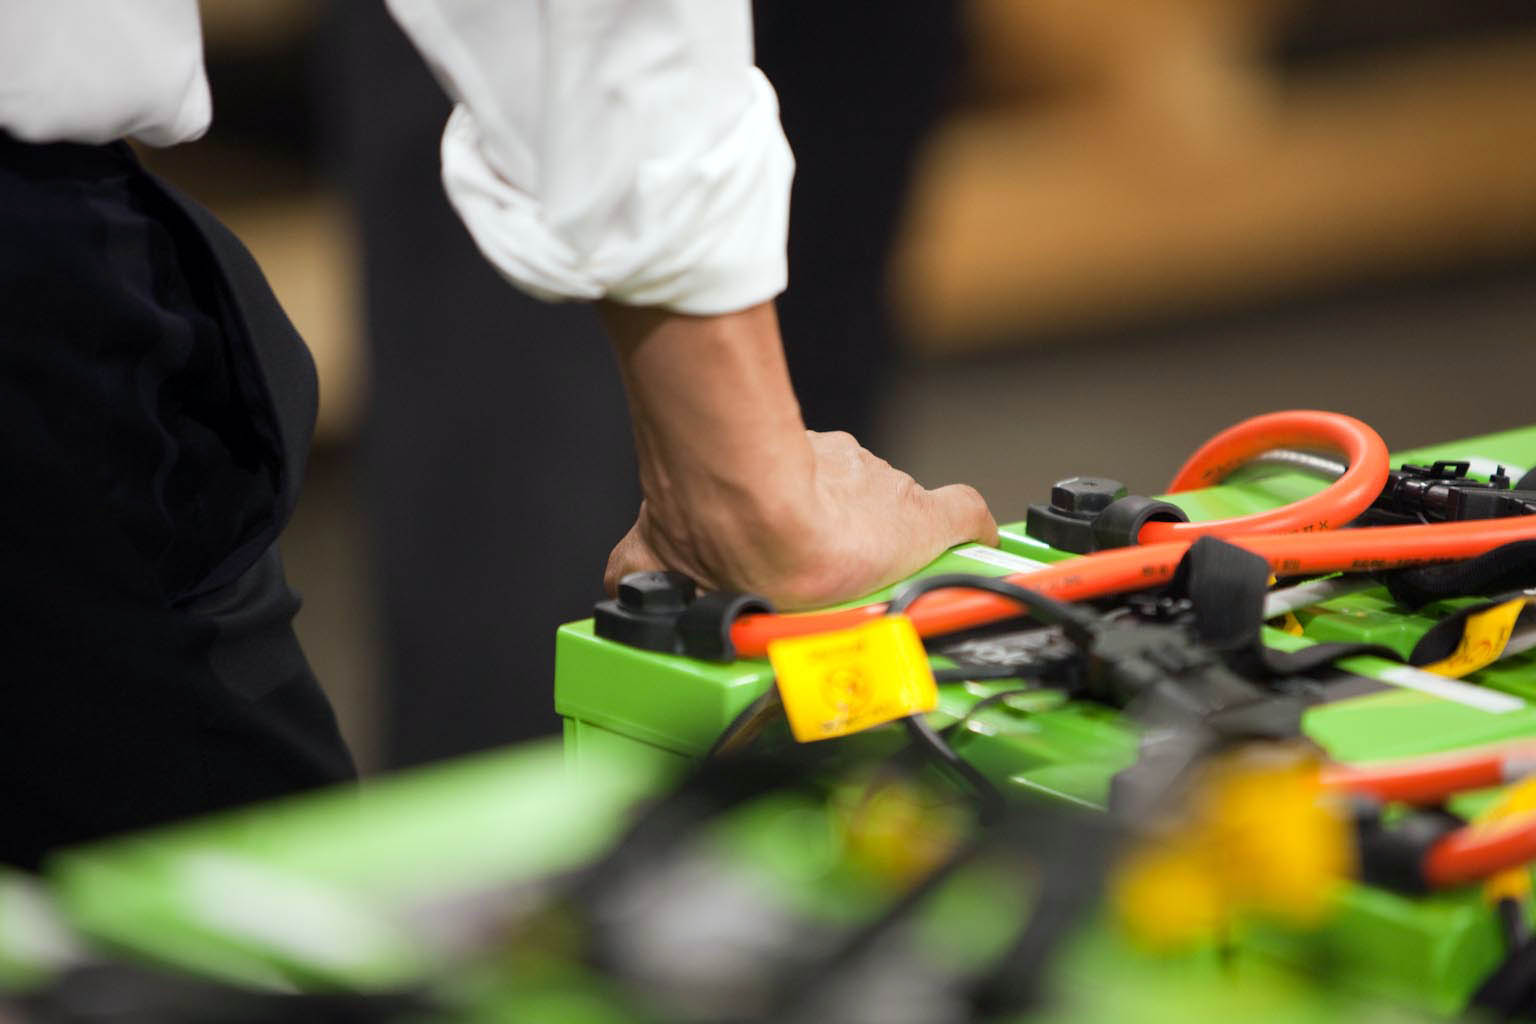 President Barack Obama's Hand on Rechargeable Batteries at Smith Electric Vehicles in Kansas City